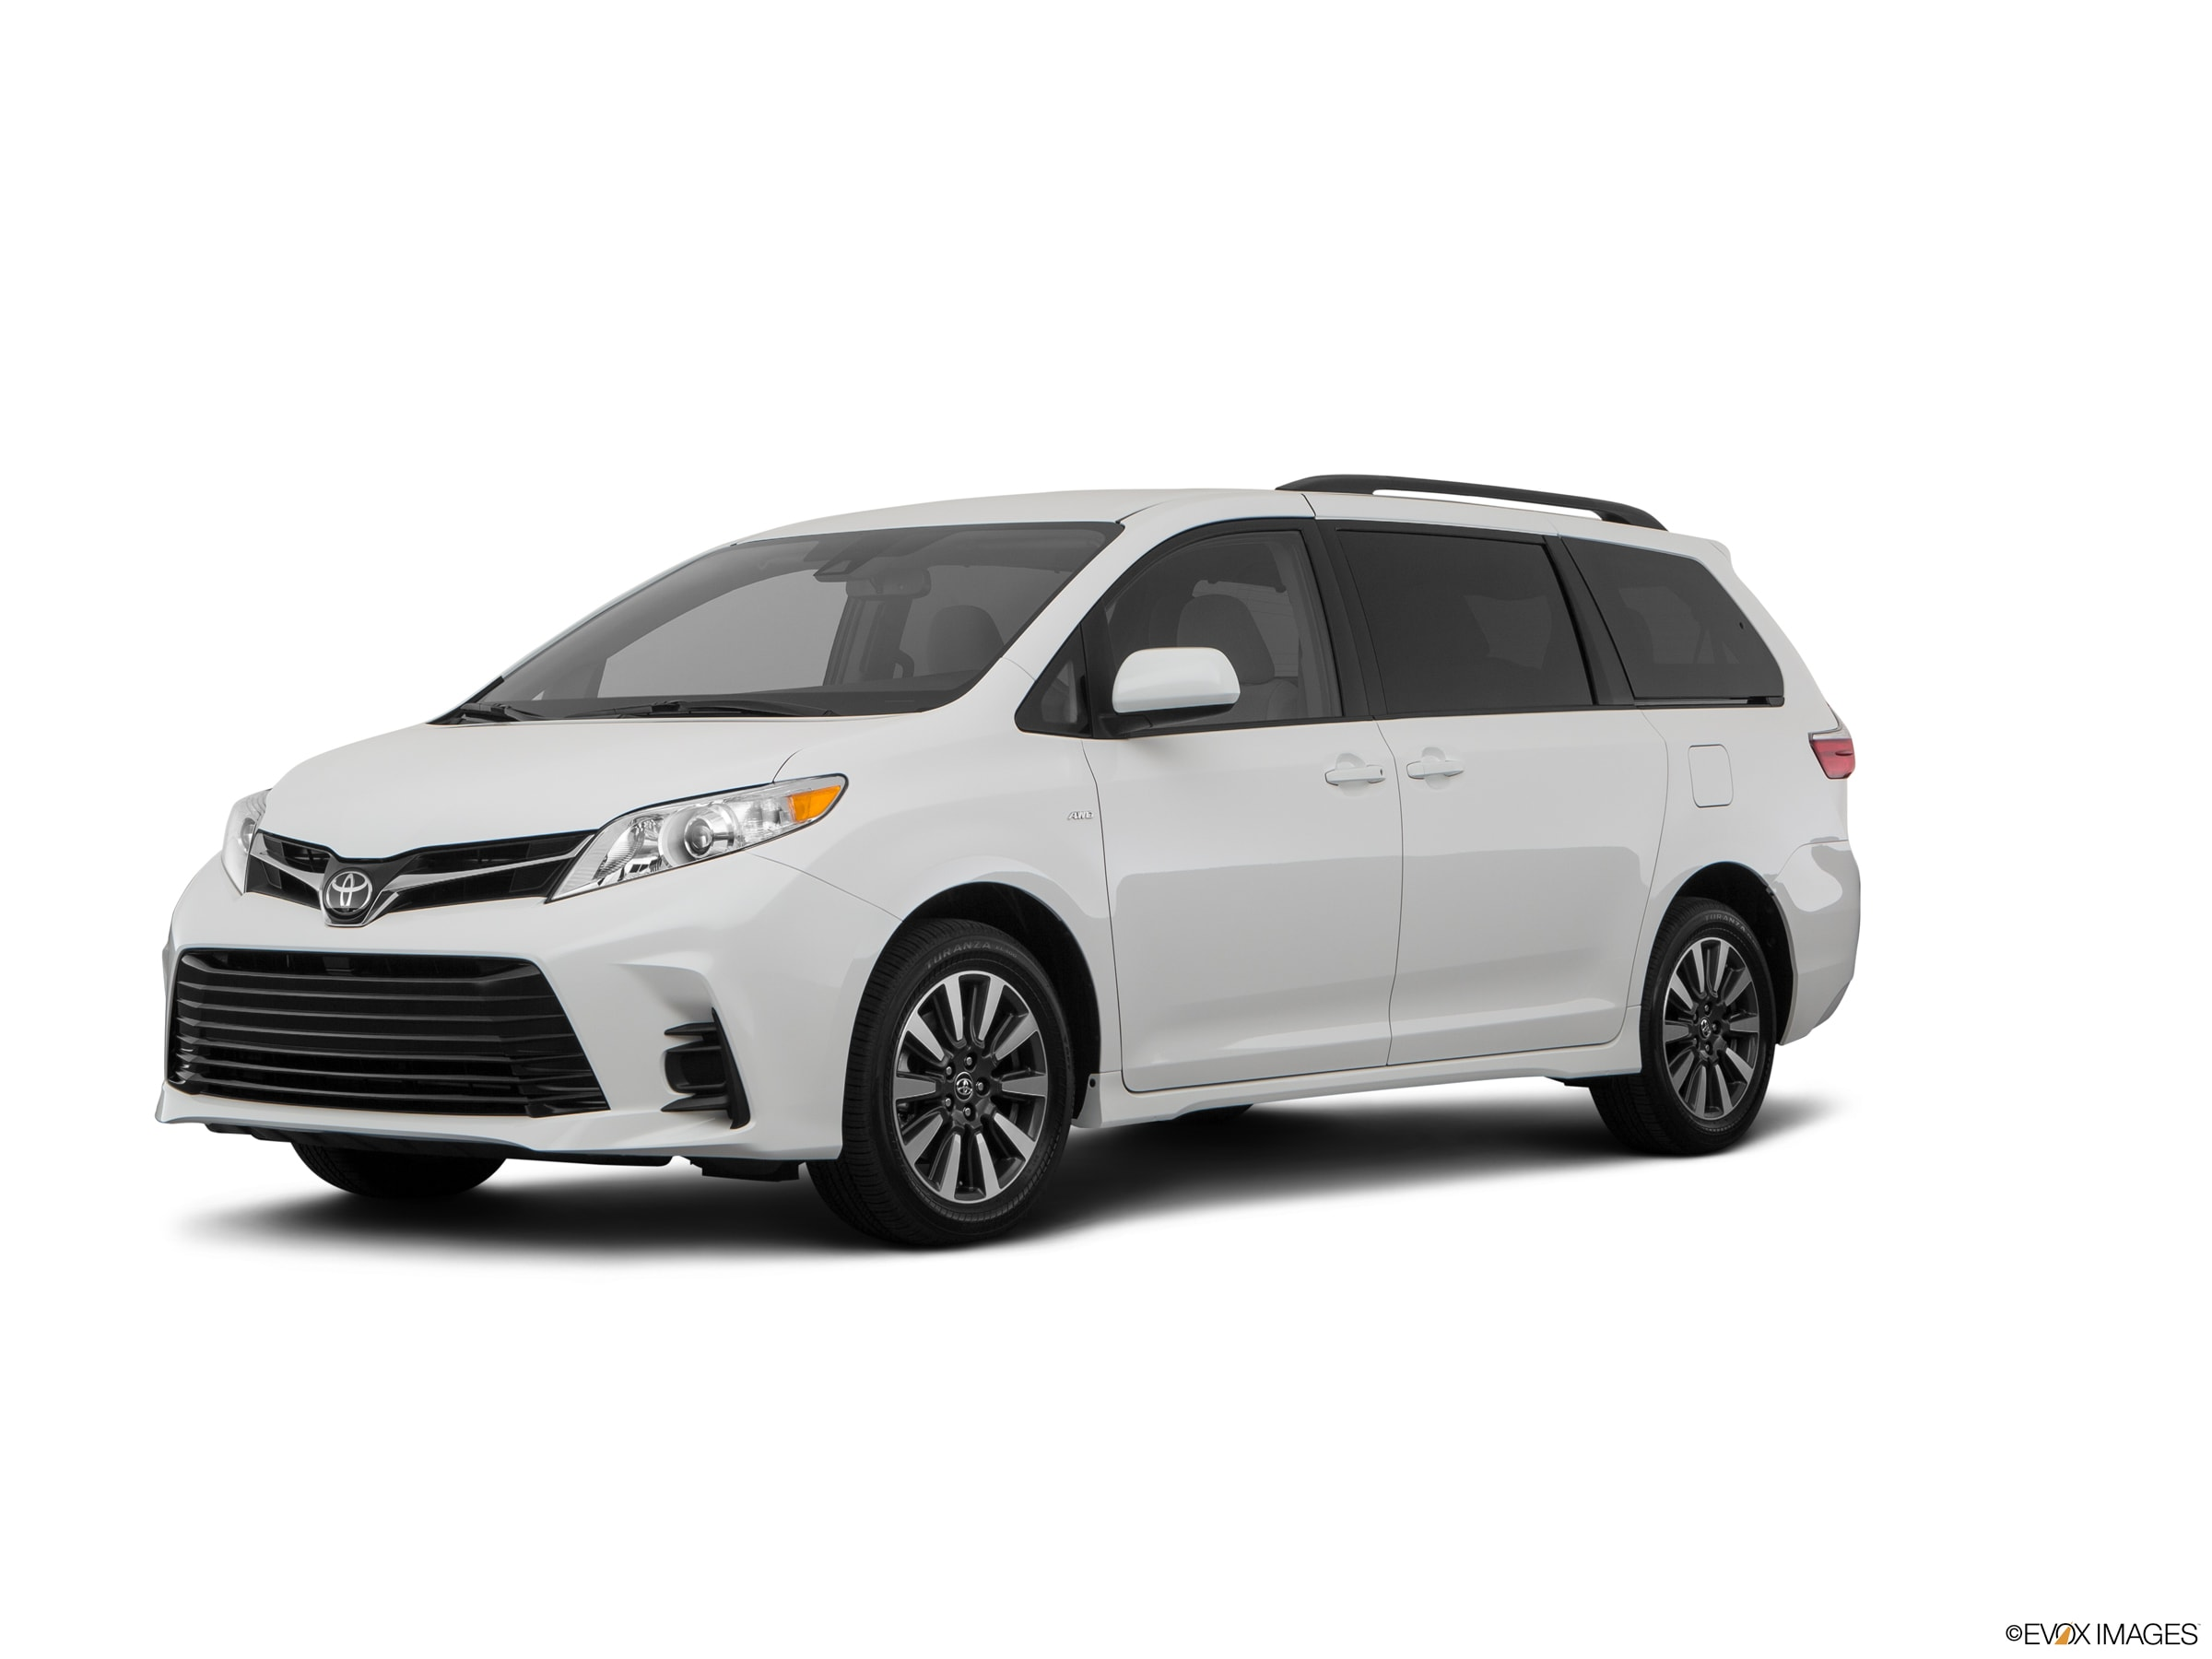 new toyota sienna for sale lease colorado springs colorado toyota dealership near colorado springs new toyota sienna for sale lease